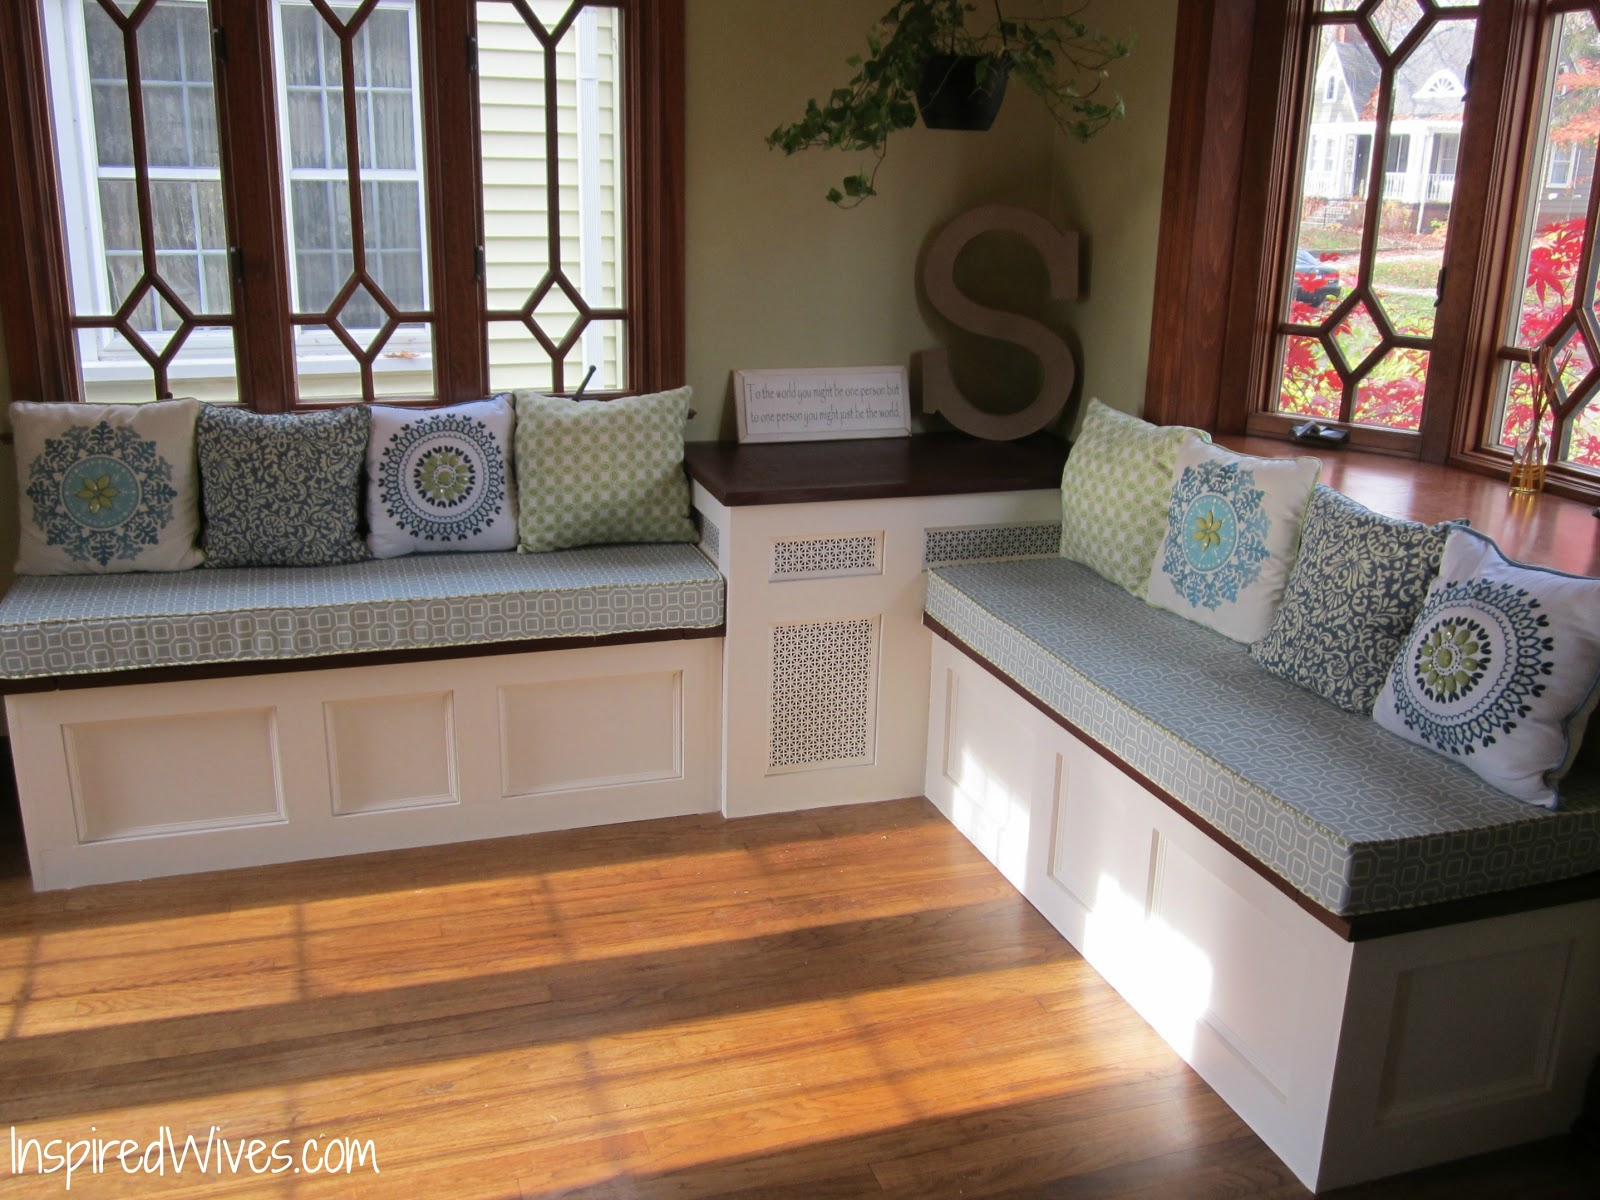 Built In Kitchen Bench Design Woodworktips